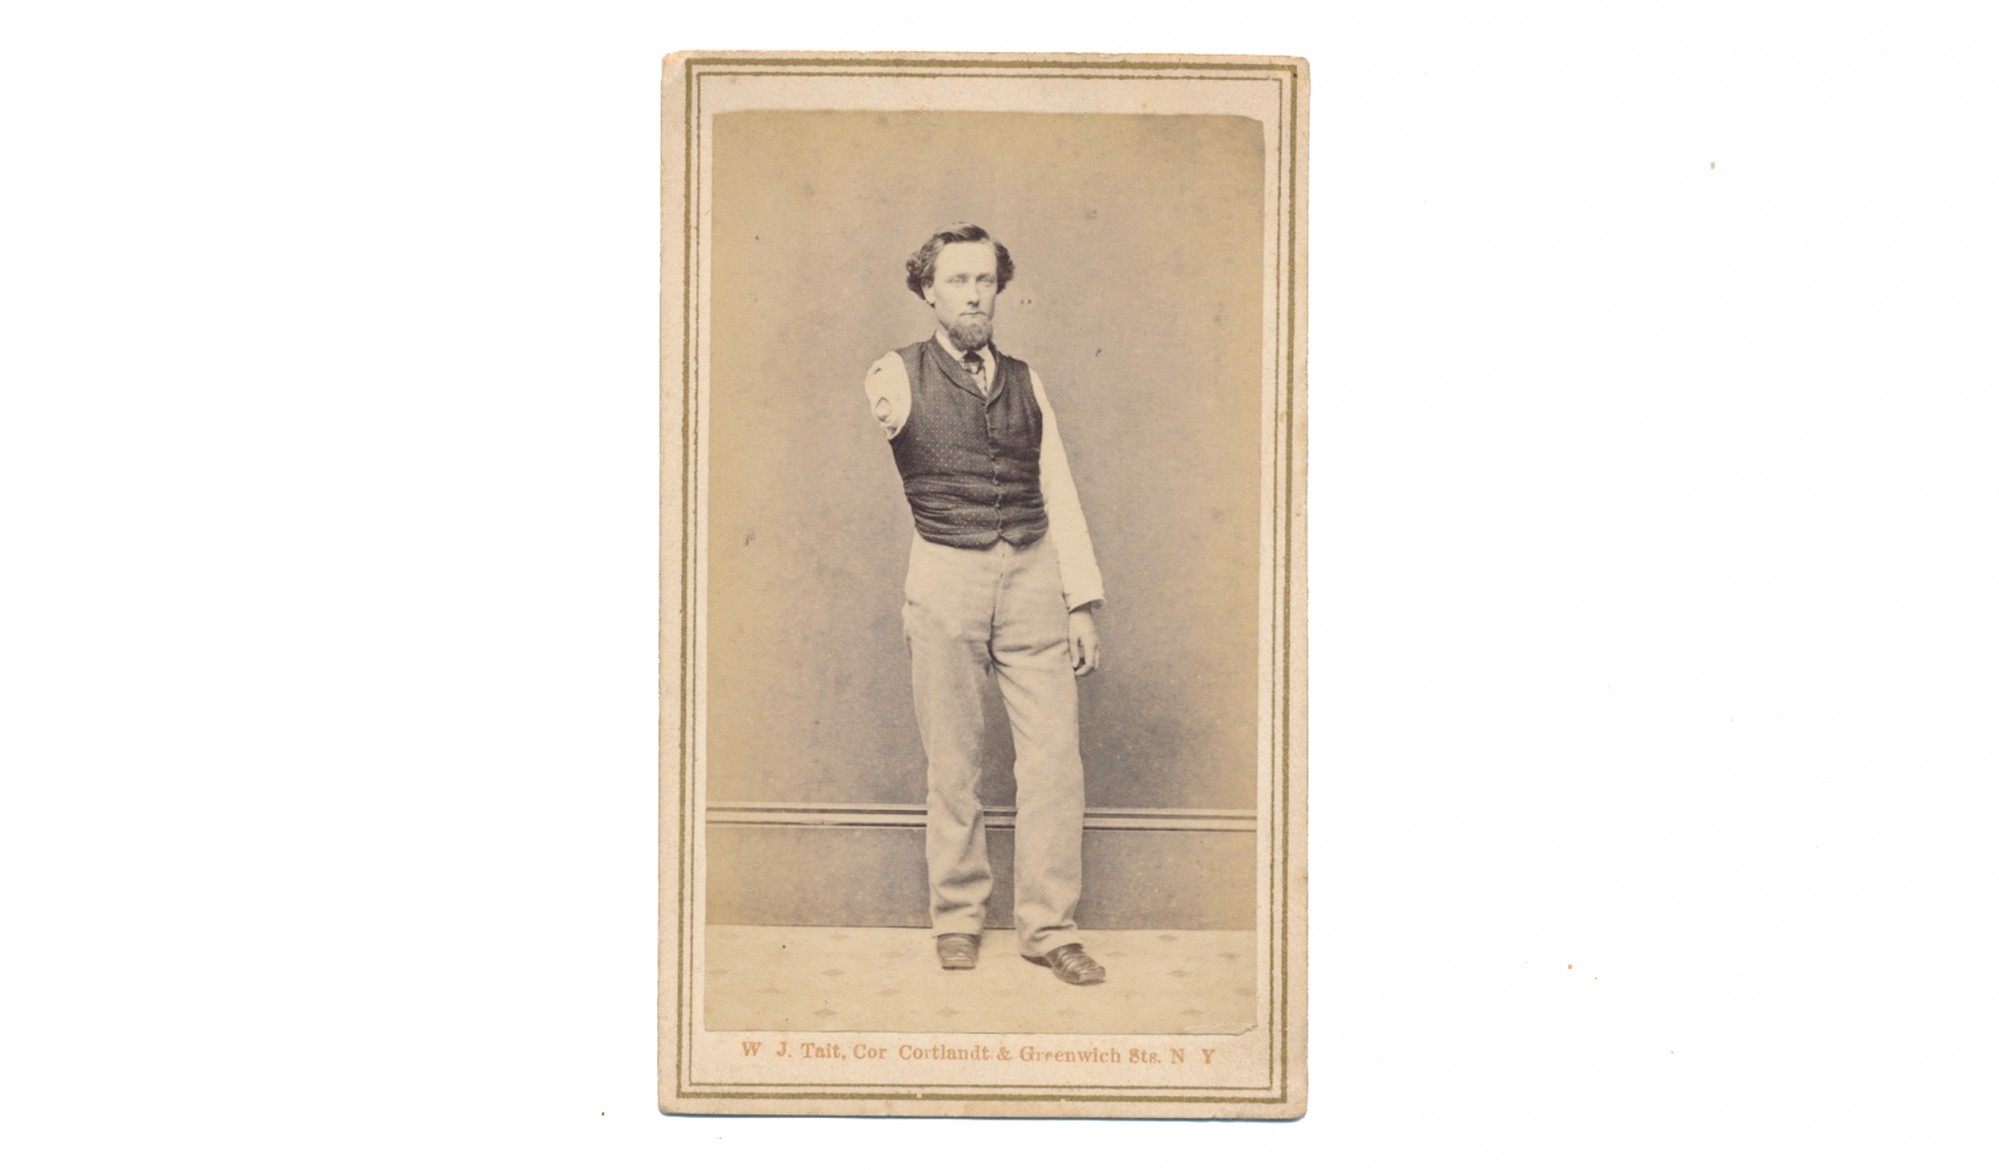 CDV OF AMPUTEE CIVIL WAR SOLDIER